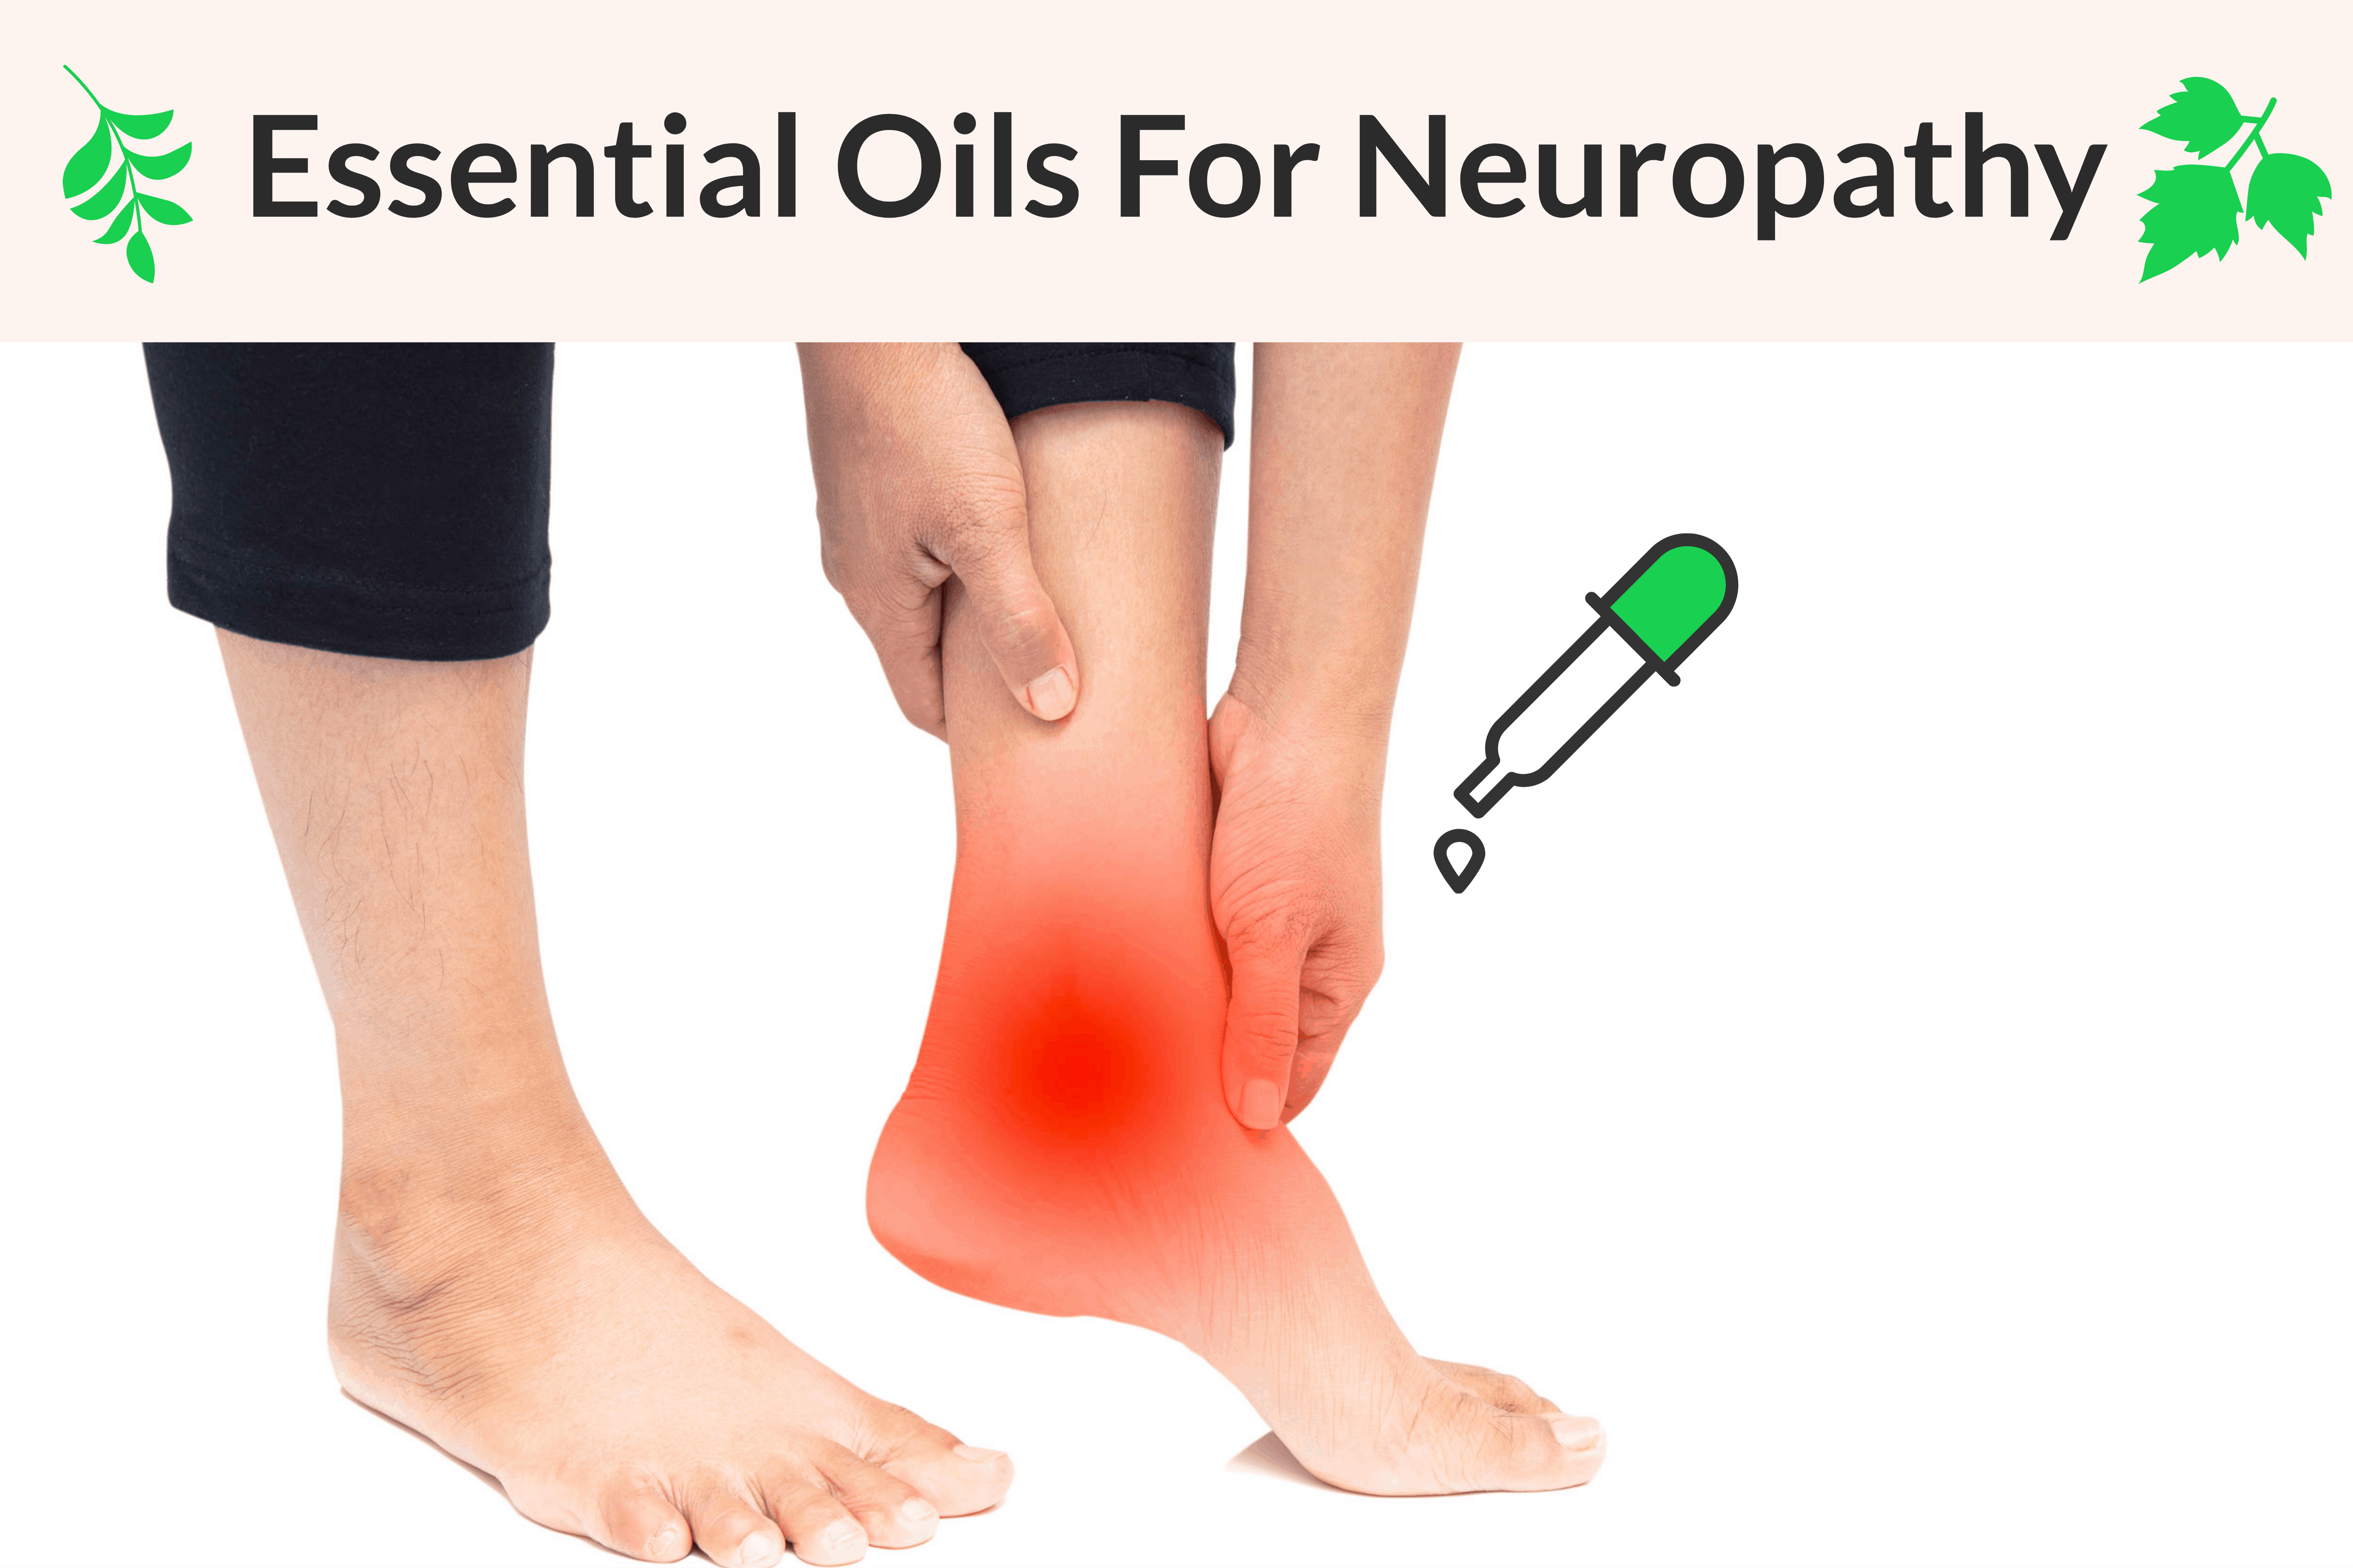 Essential Oils For Neuropathy: Everything You Need To Know